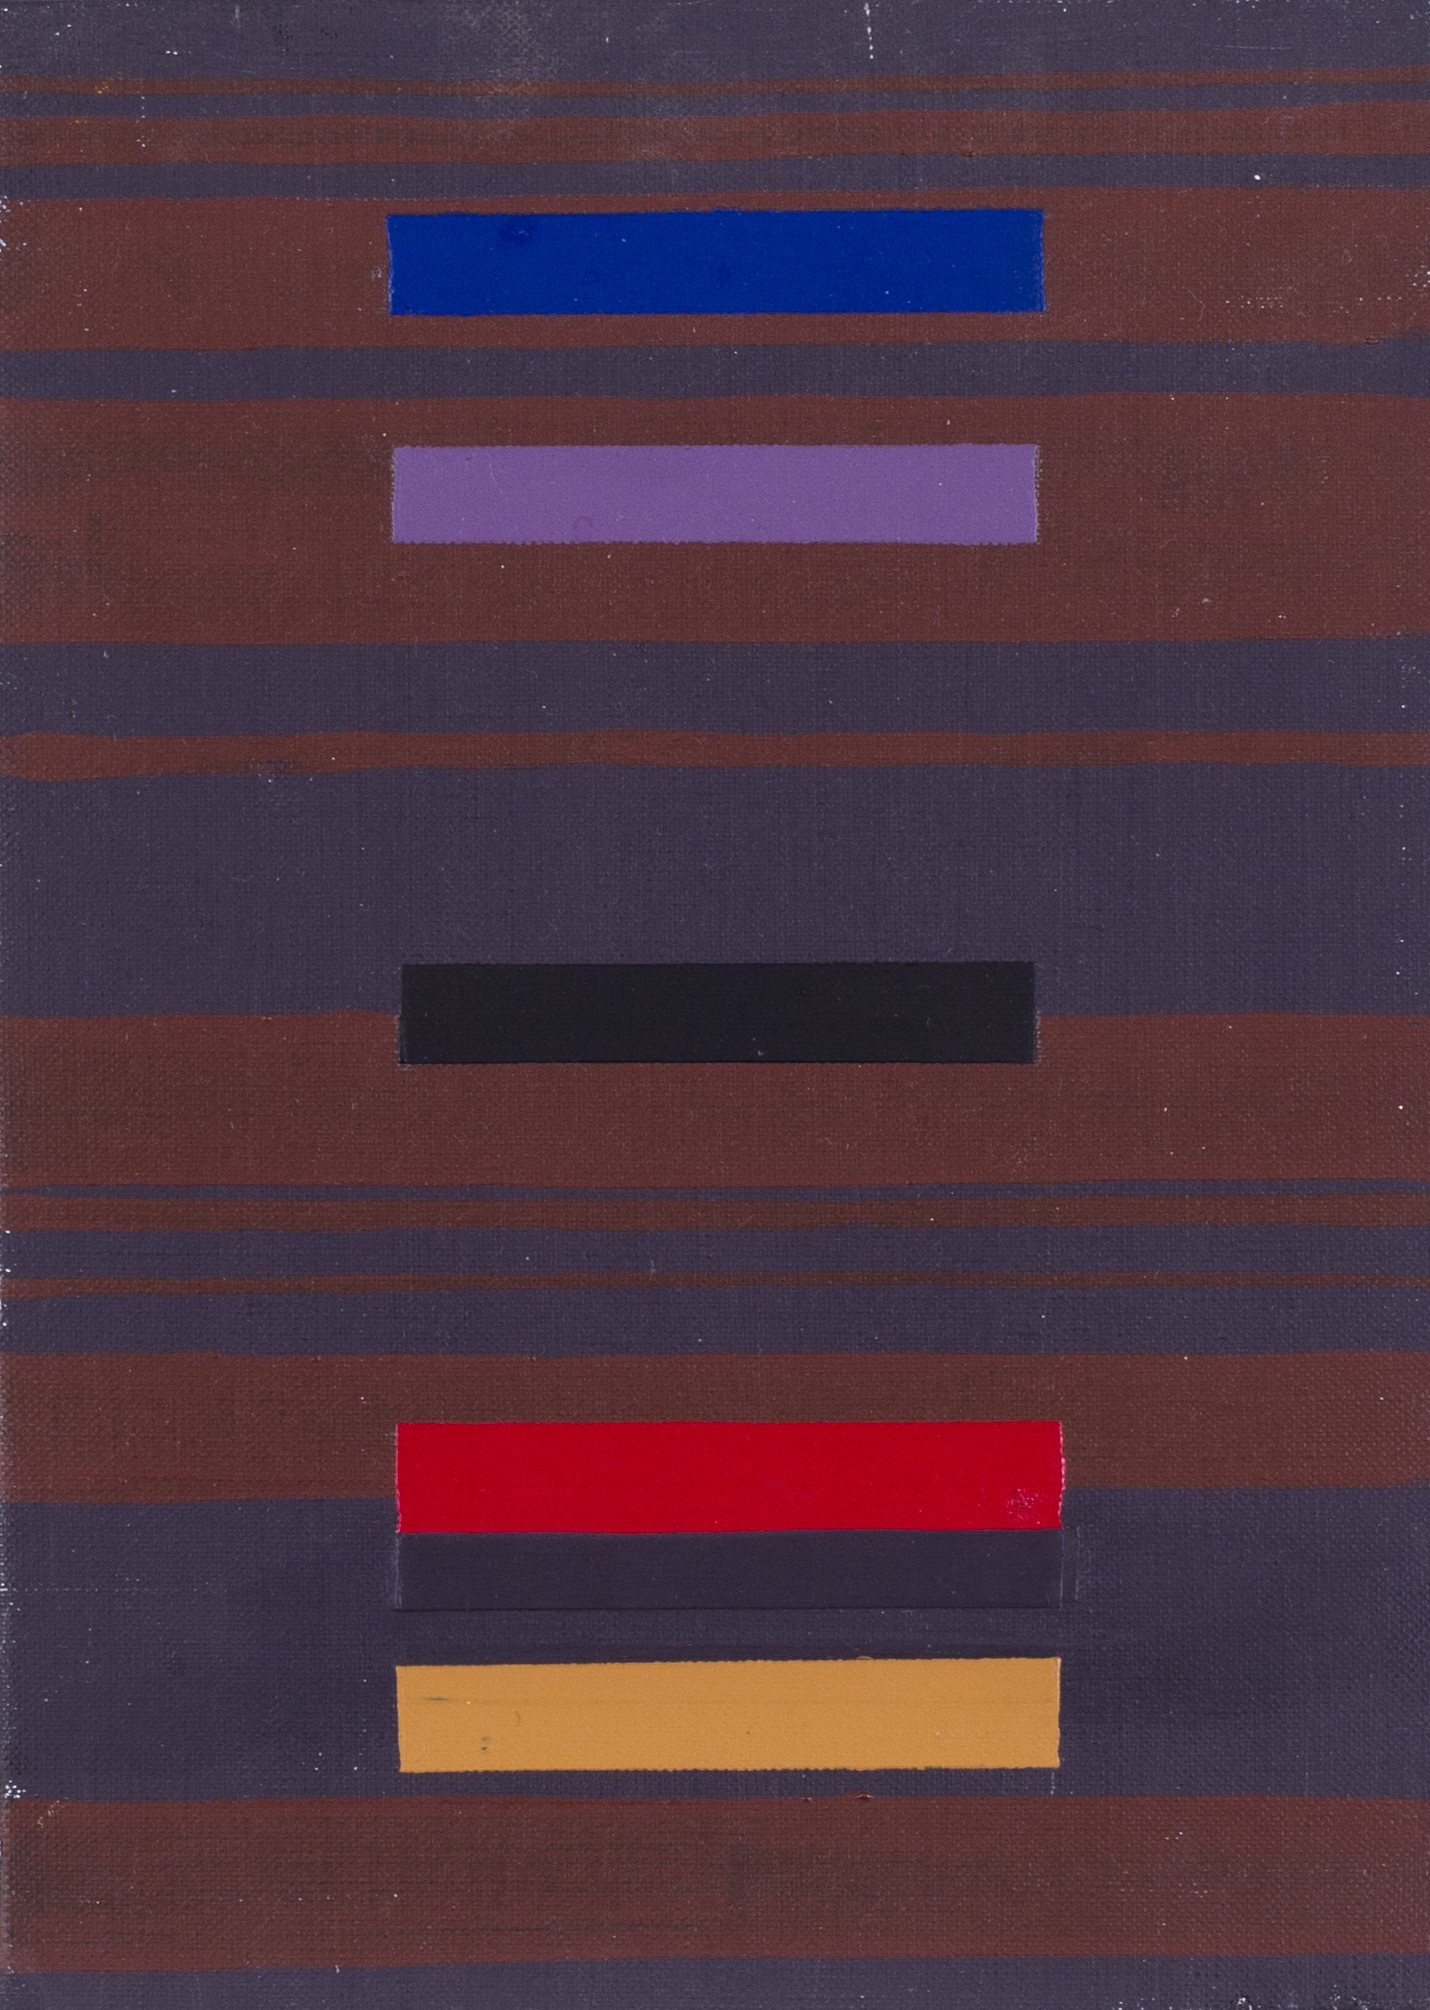 Progression, 1975    Acrylic on canvas  Signed and dated 'J Froment 1975' (on the reverse)  8.7/8 x 6.3/8 in. (22.1/2 x 16.3 cm.)   Price: £610